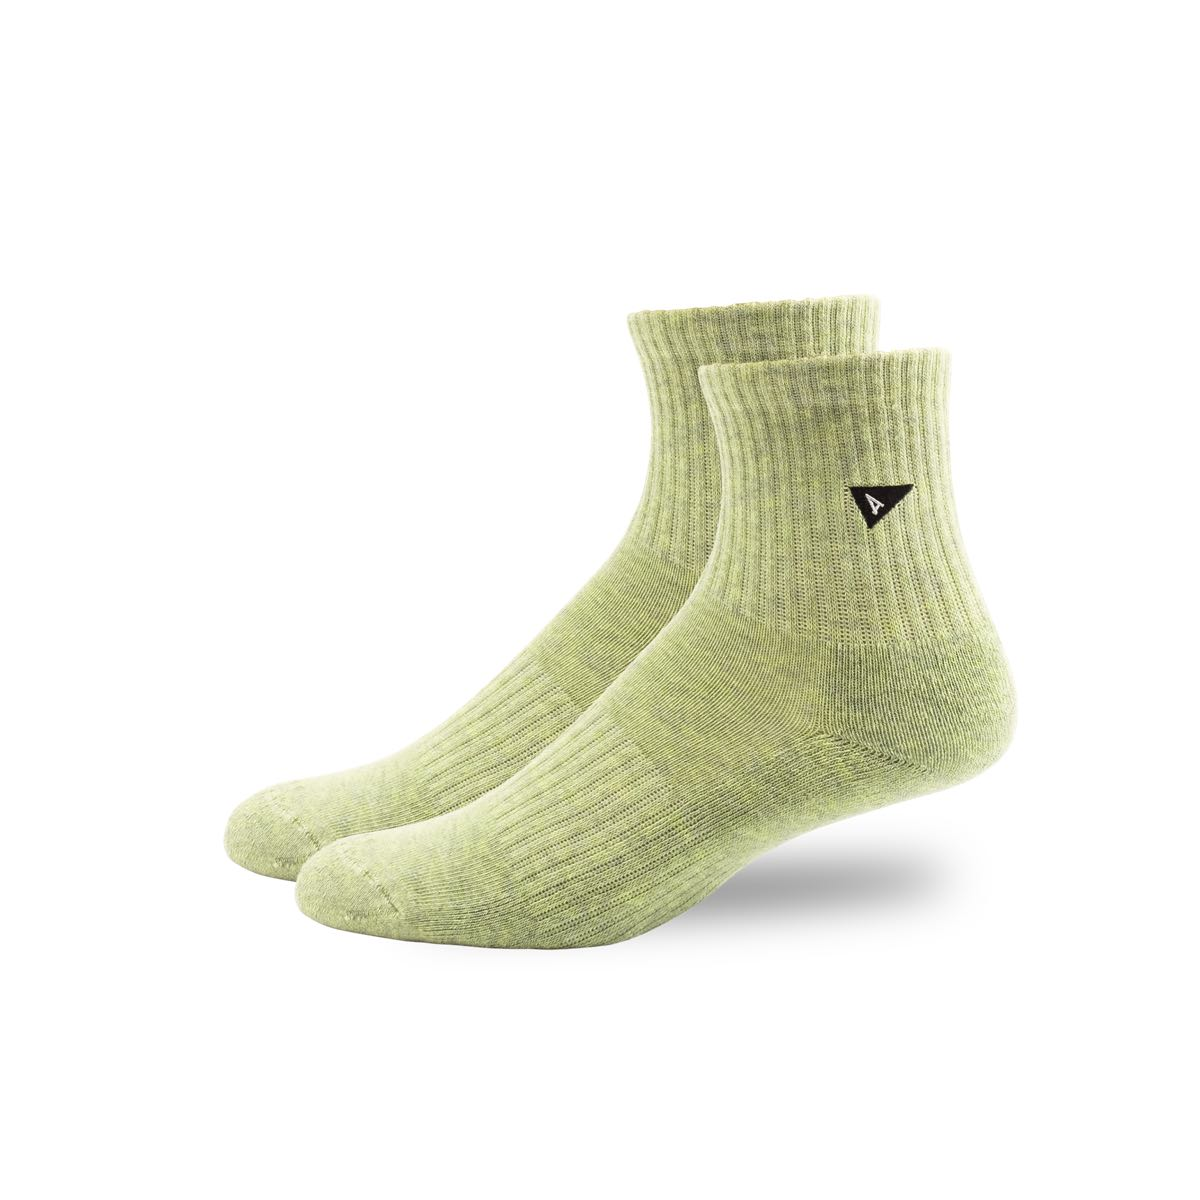 Arvin Goods Mini Crew Plant Dye Socks - Green image